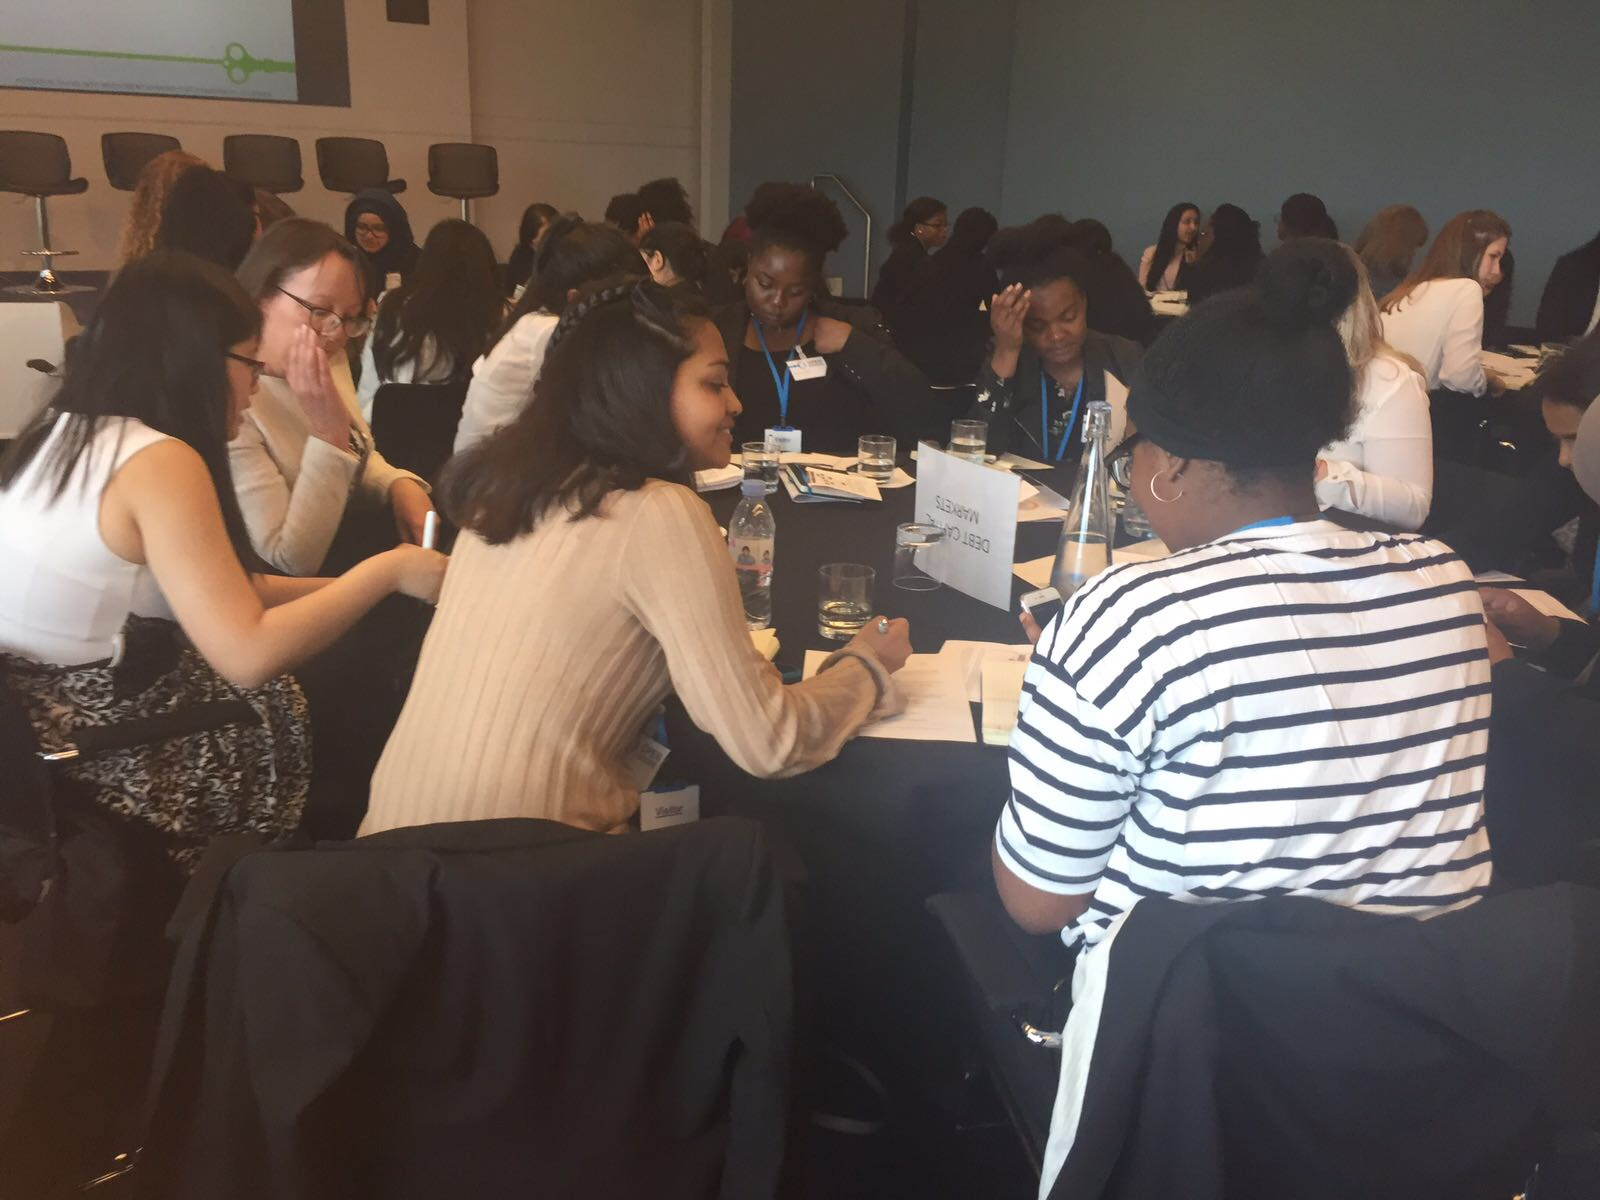 Group of female-identifying students sitting and working together at an Open Doors event.